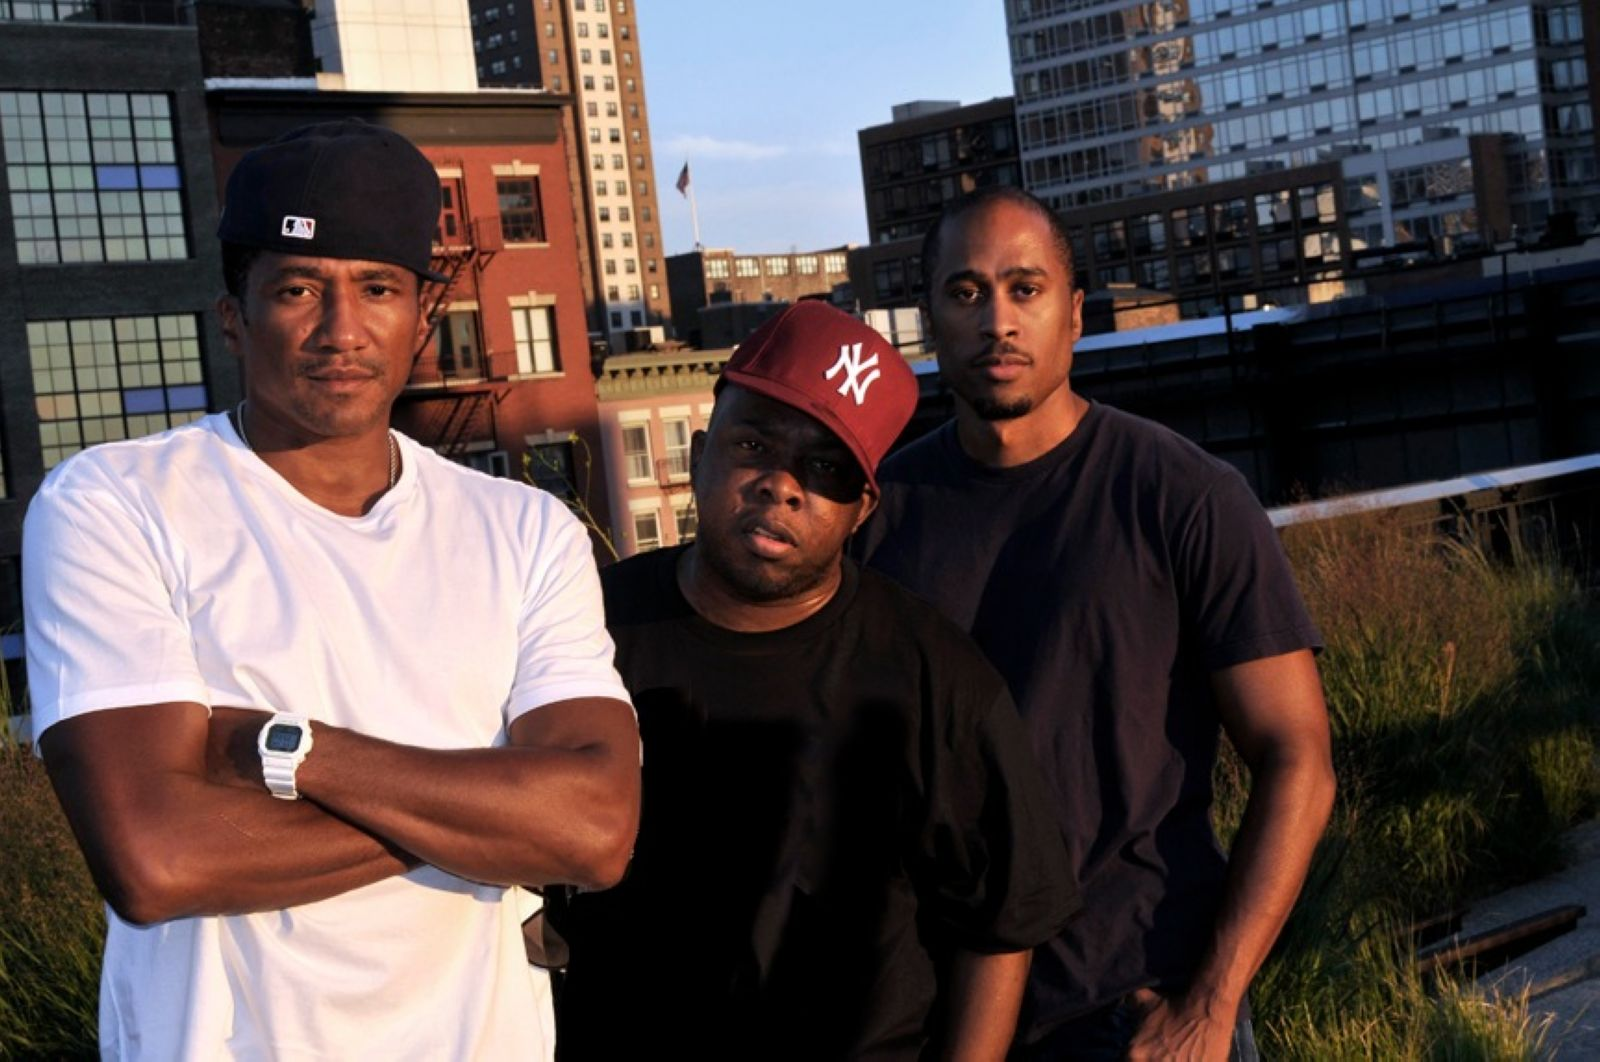 A Tribe Called Quest: (L-R) Q-Tip, Phife Dawg and Ali Shaheed